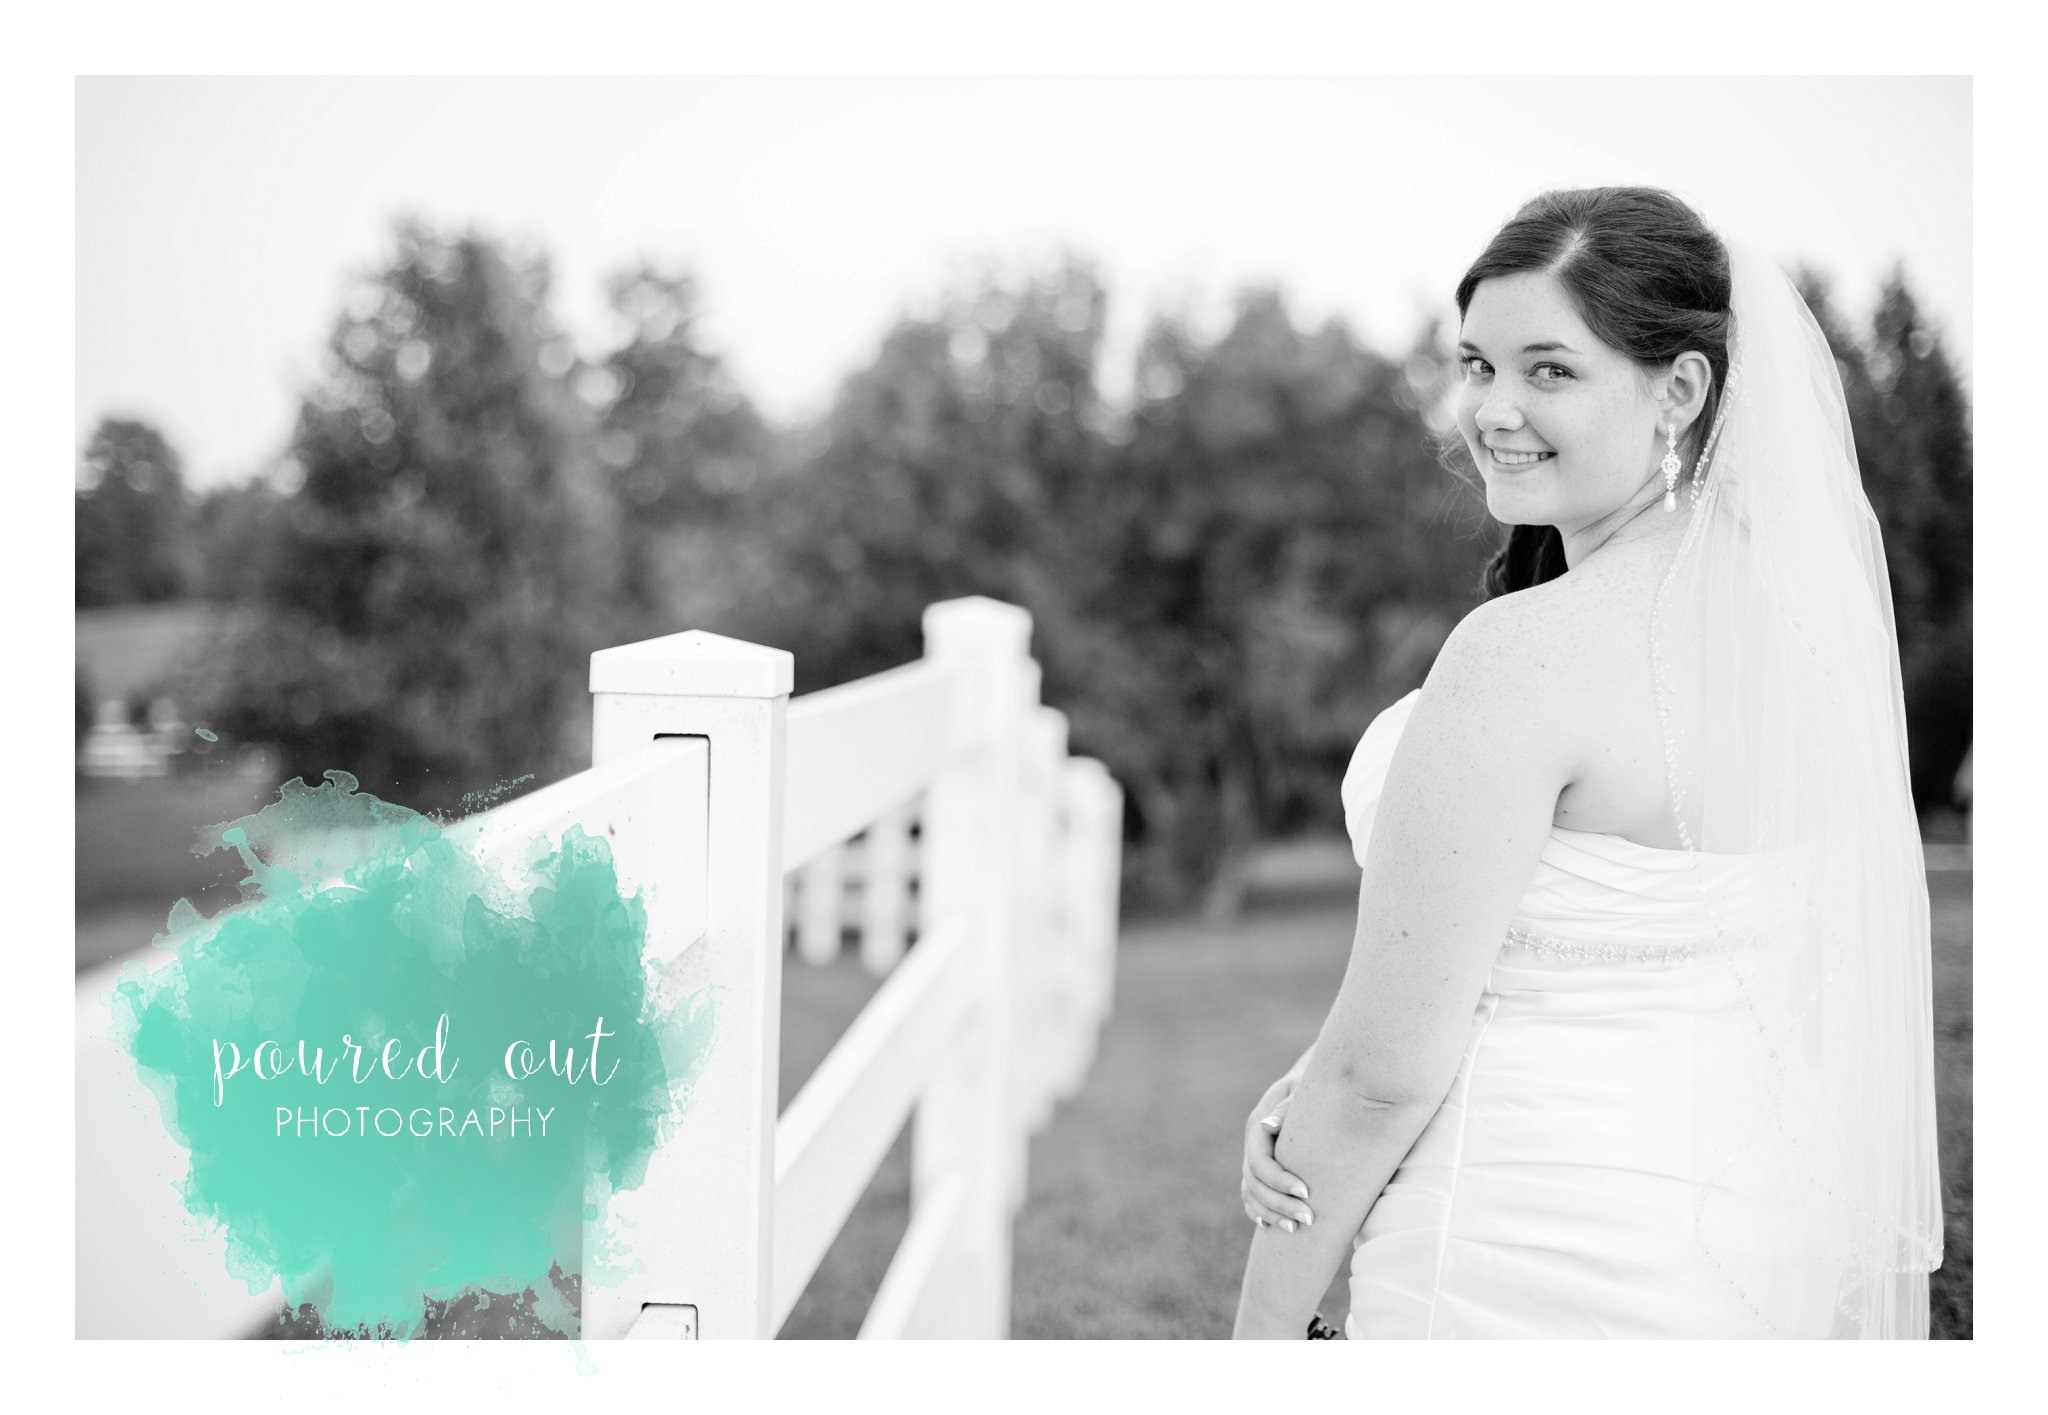 april_bridal_poured_out_photography-167_WEB.jpg